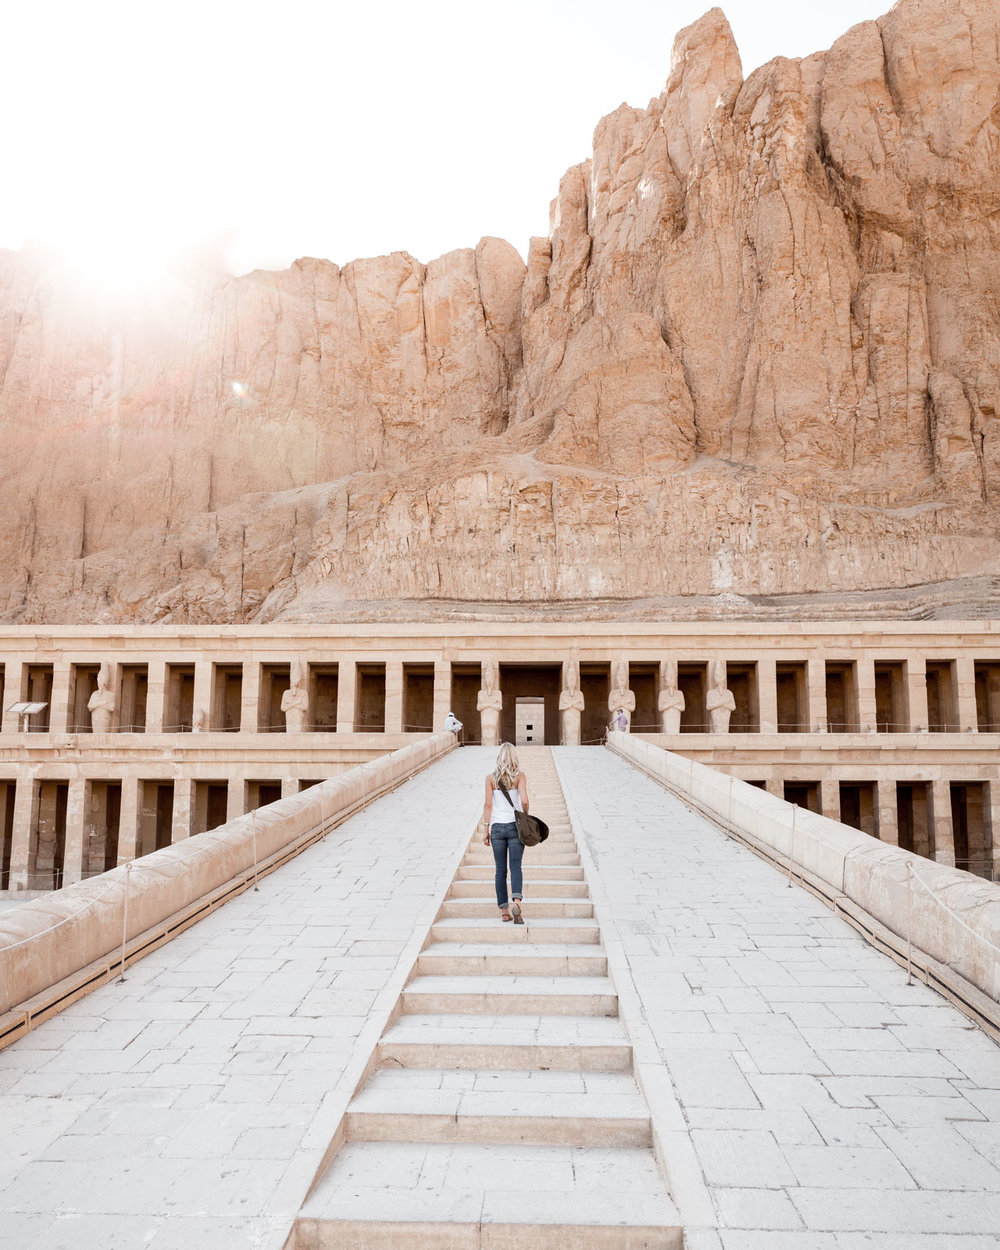 Temple of Hatshepsut, Valley of the Queens, Luxor, Egypt